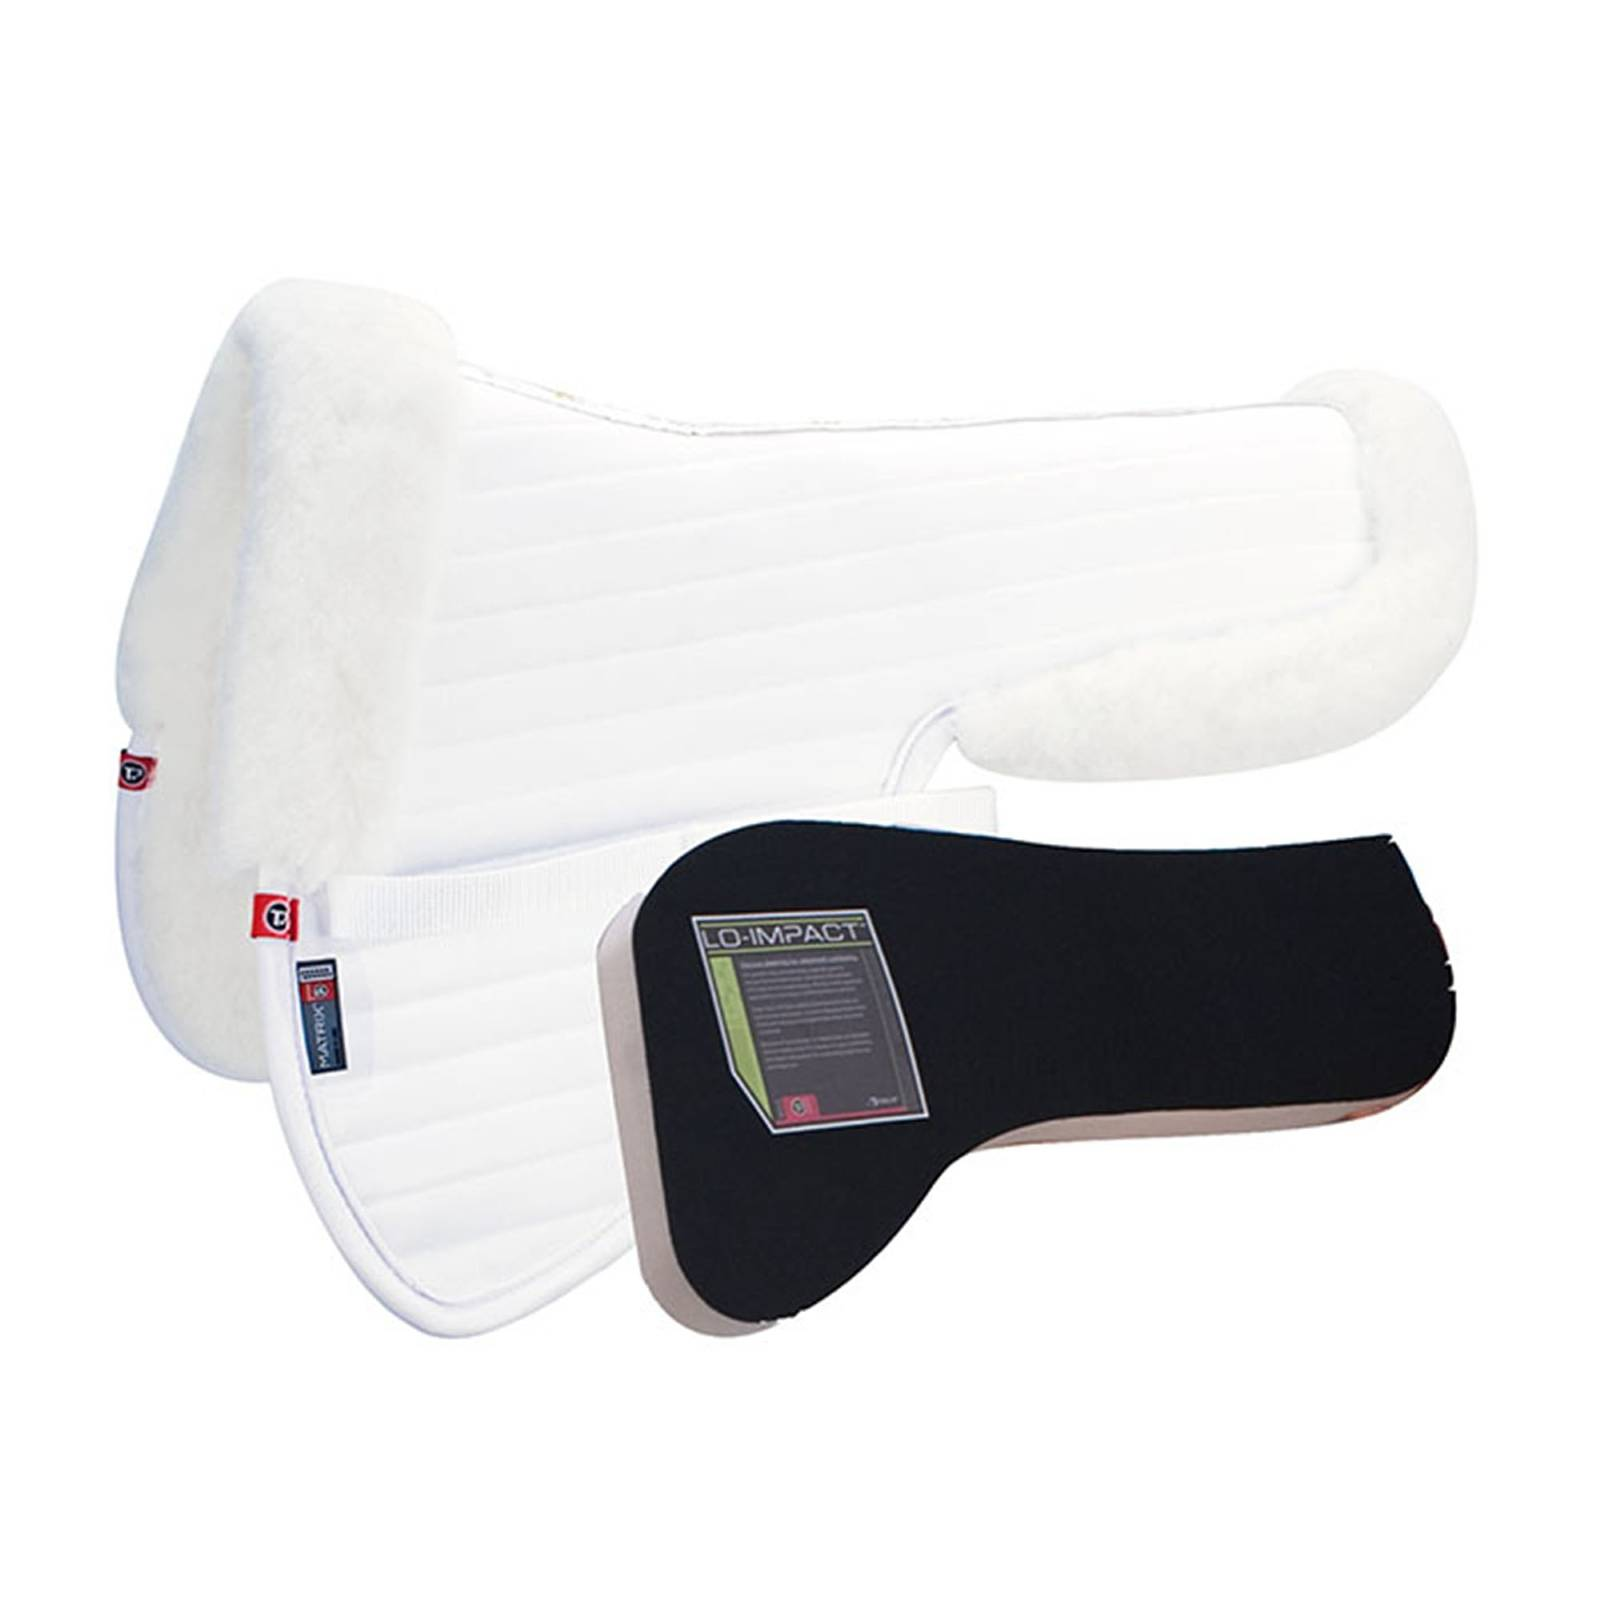 Matrix T3 Ergonomic CoolBack Half Pad with Lo-Impact Inserts